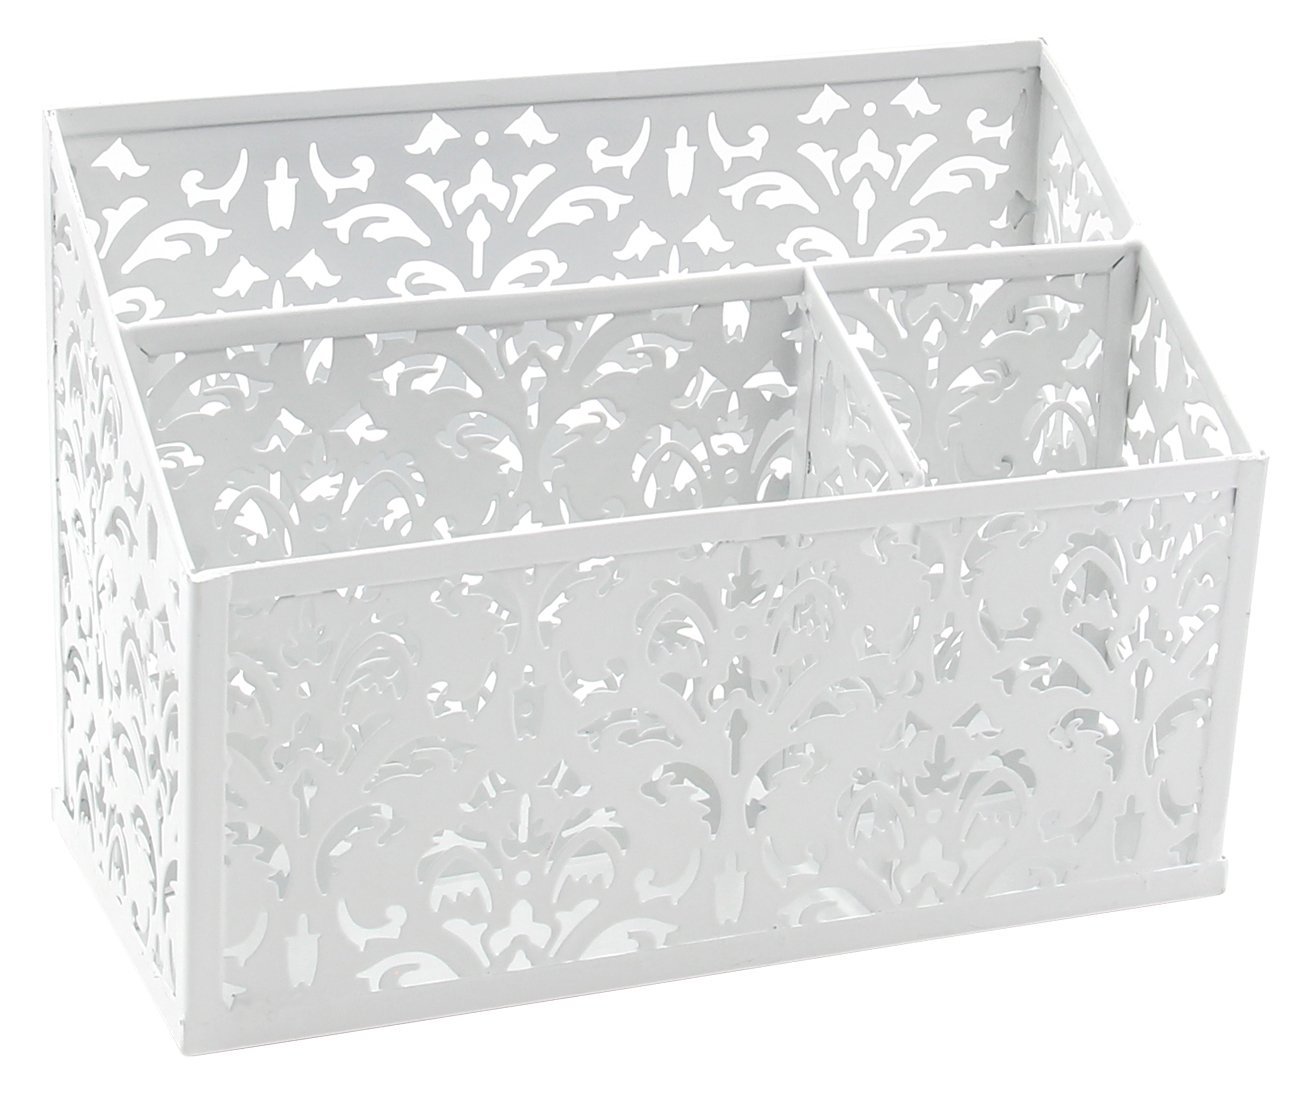 EasyPAG Decorative 3 Compartment Desk Organizer Office Supply Caddy , 8-1/2 X 4 X 4 inch ,White